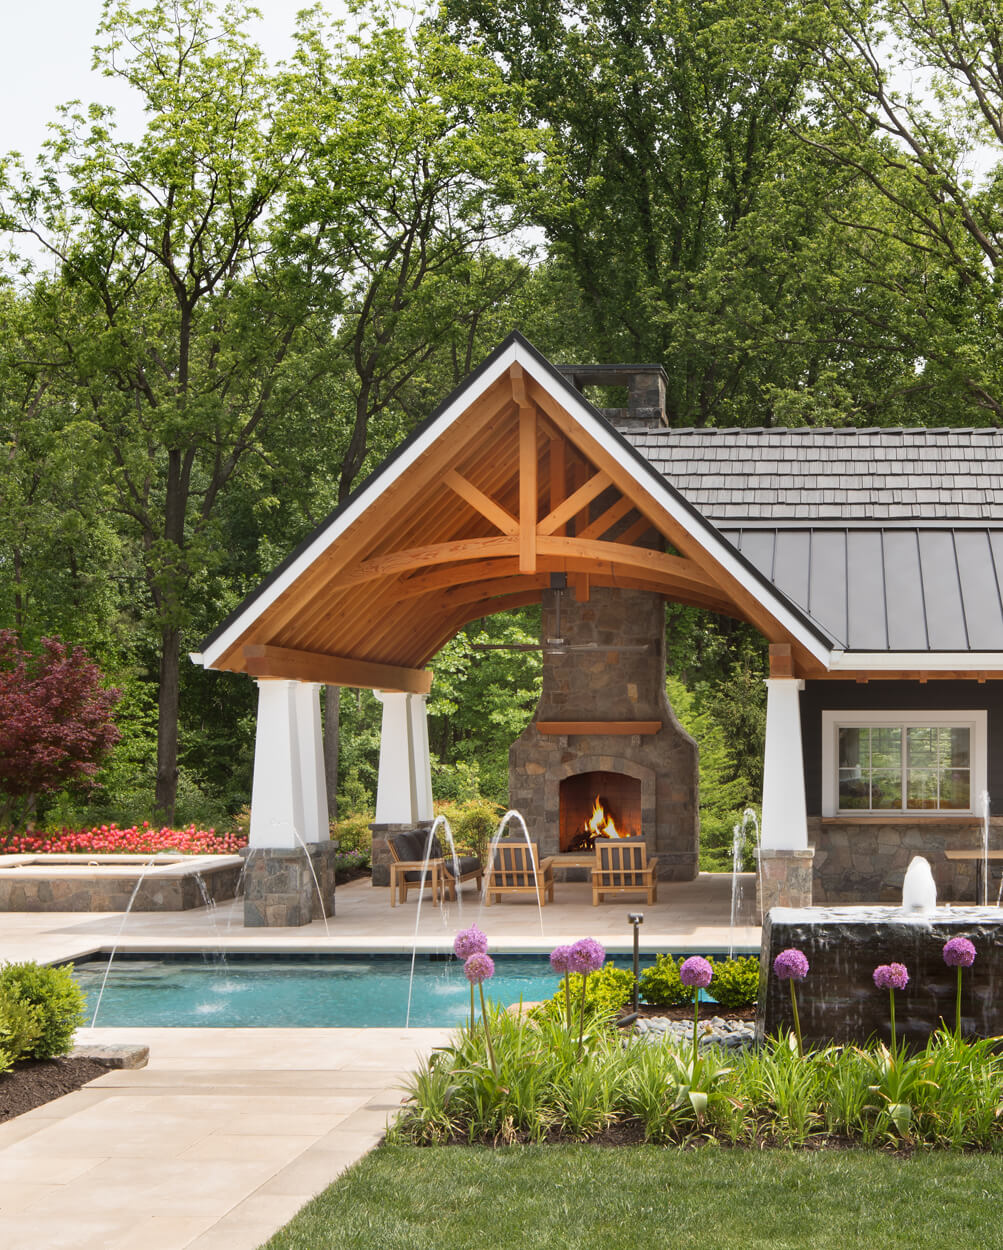 stone fireplace sheltered by poolside pavilion